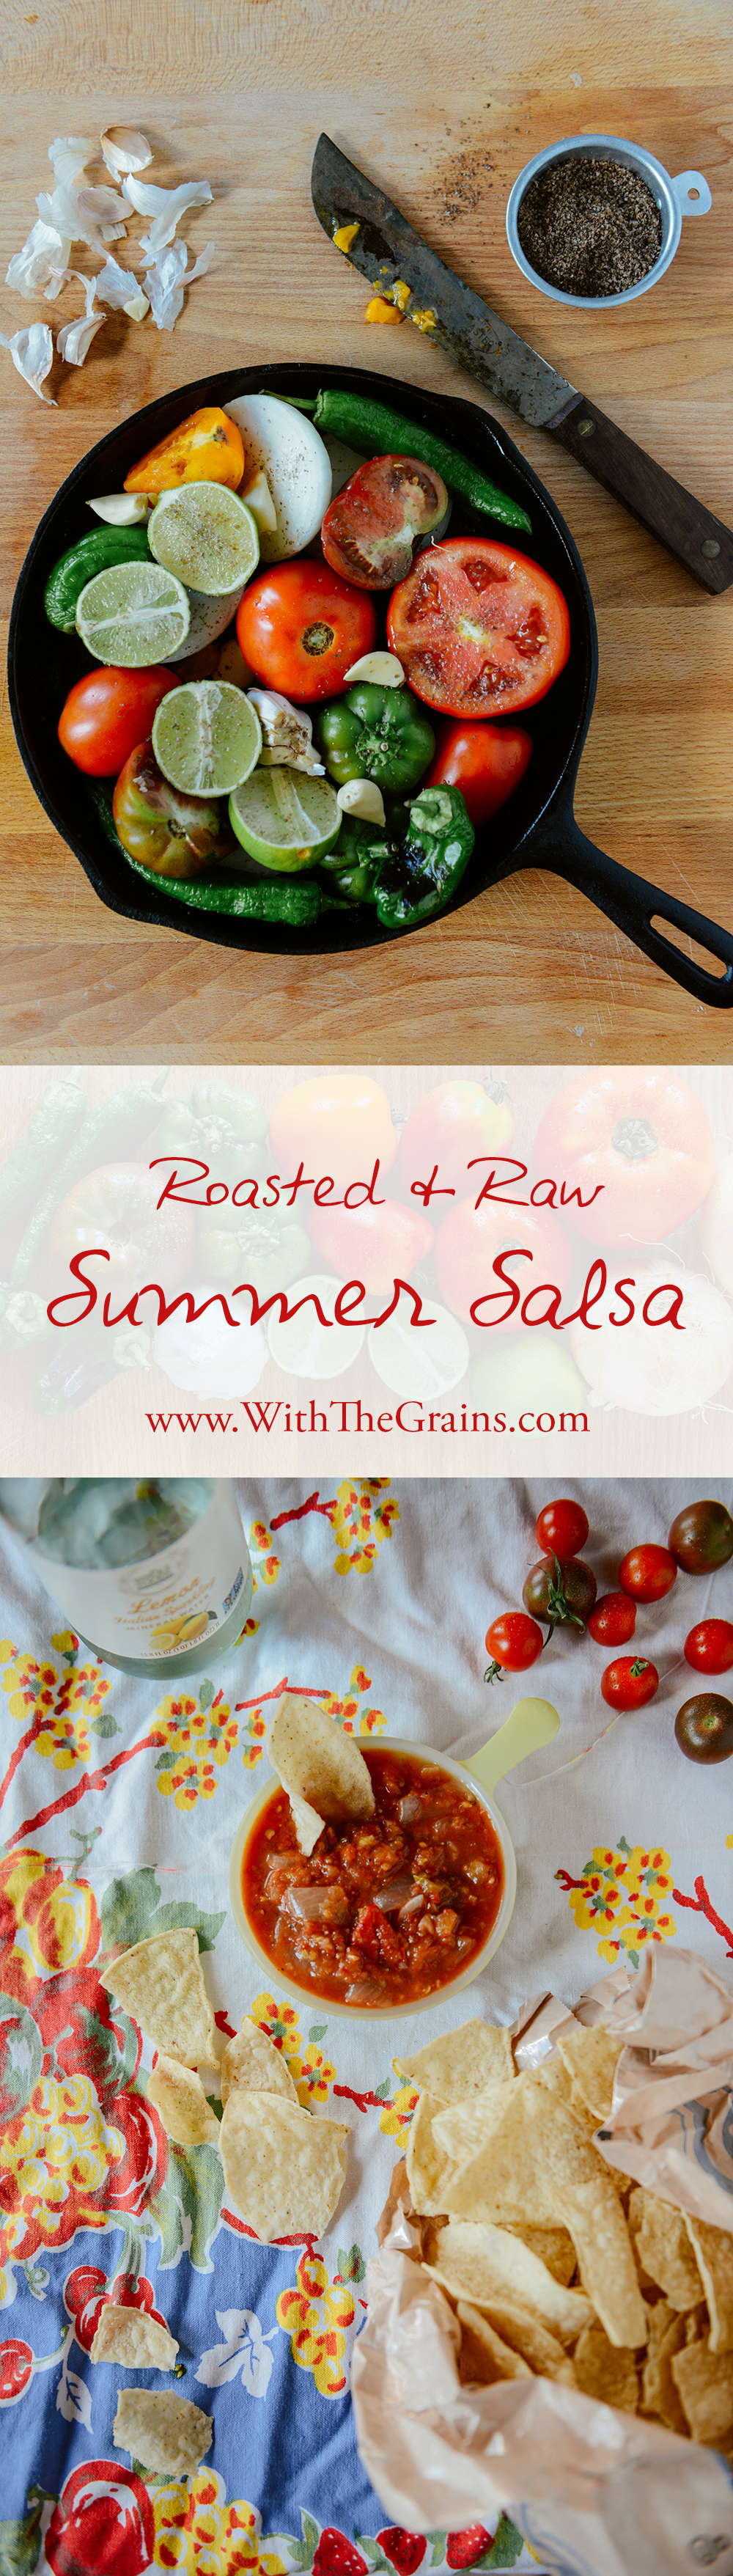 Roasted & Raw Summer Salsa // www.WithTheGrains.com